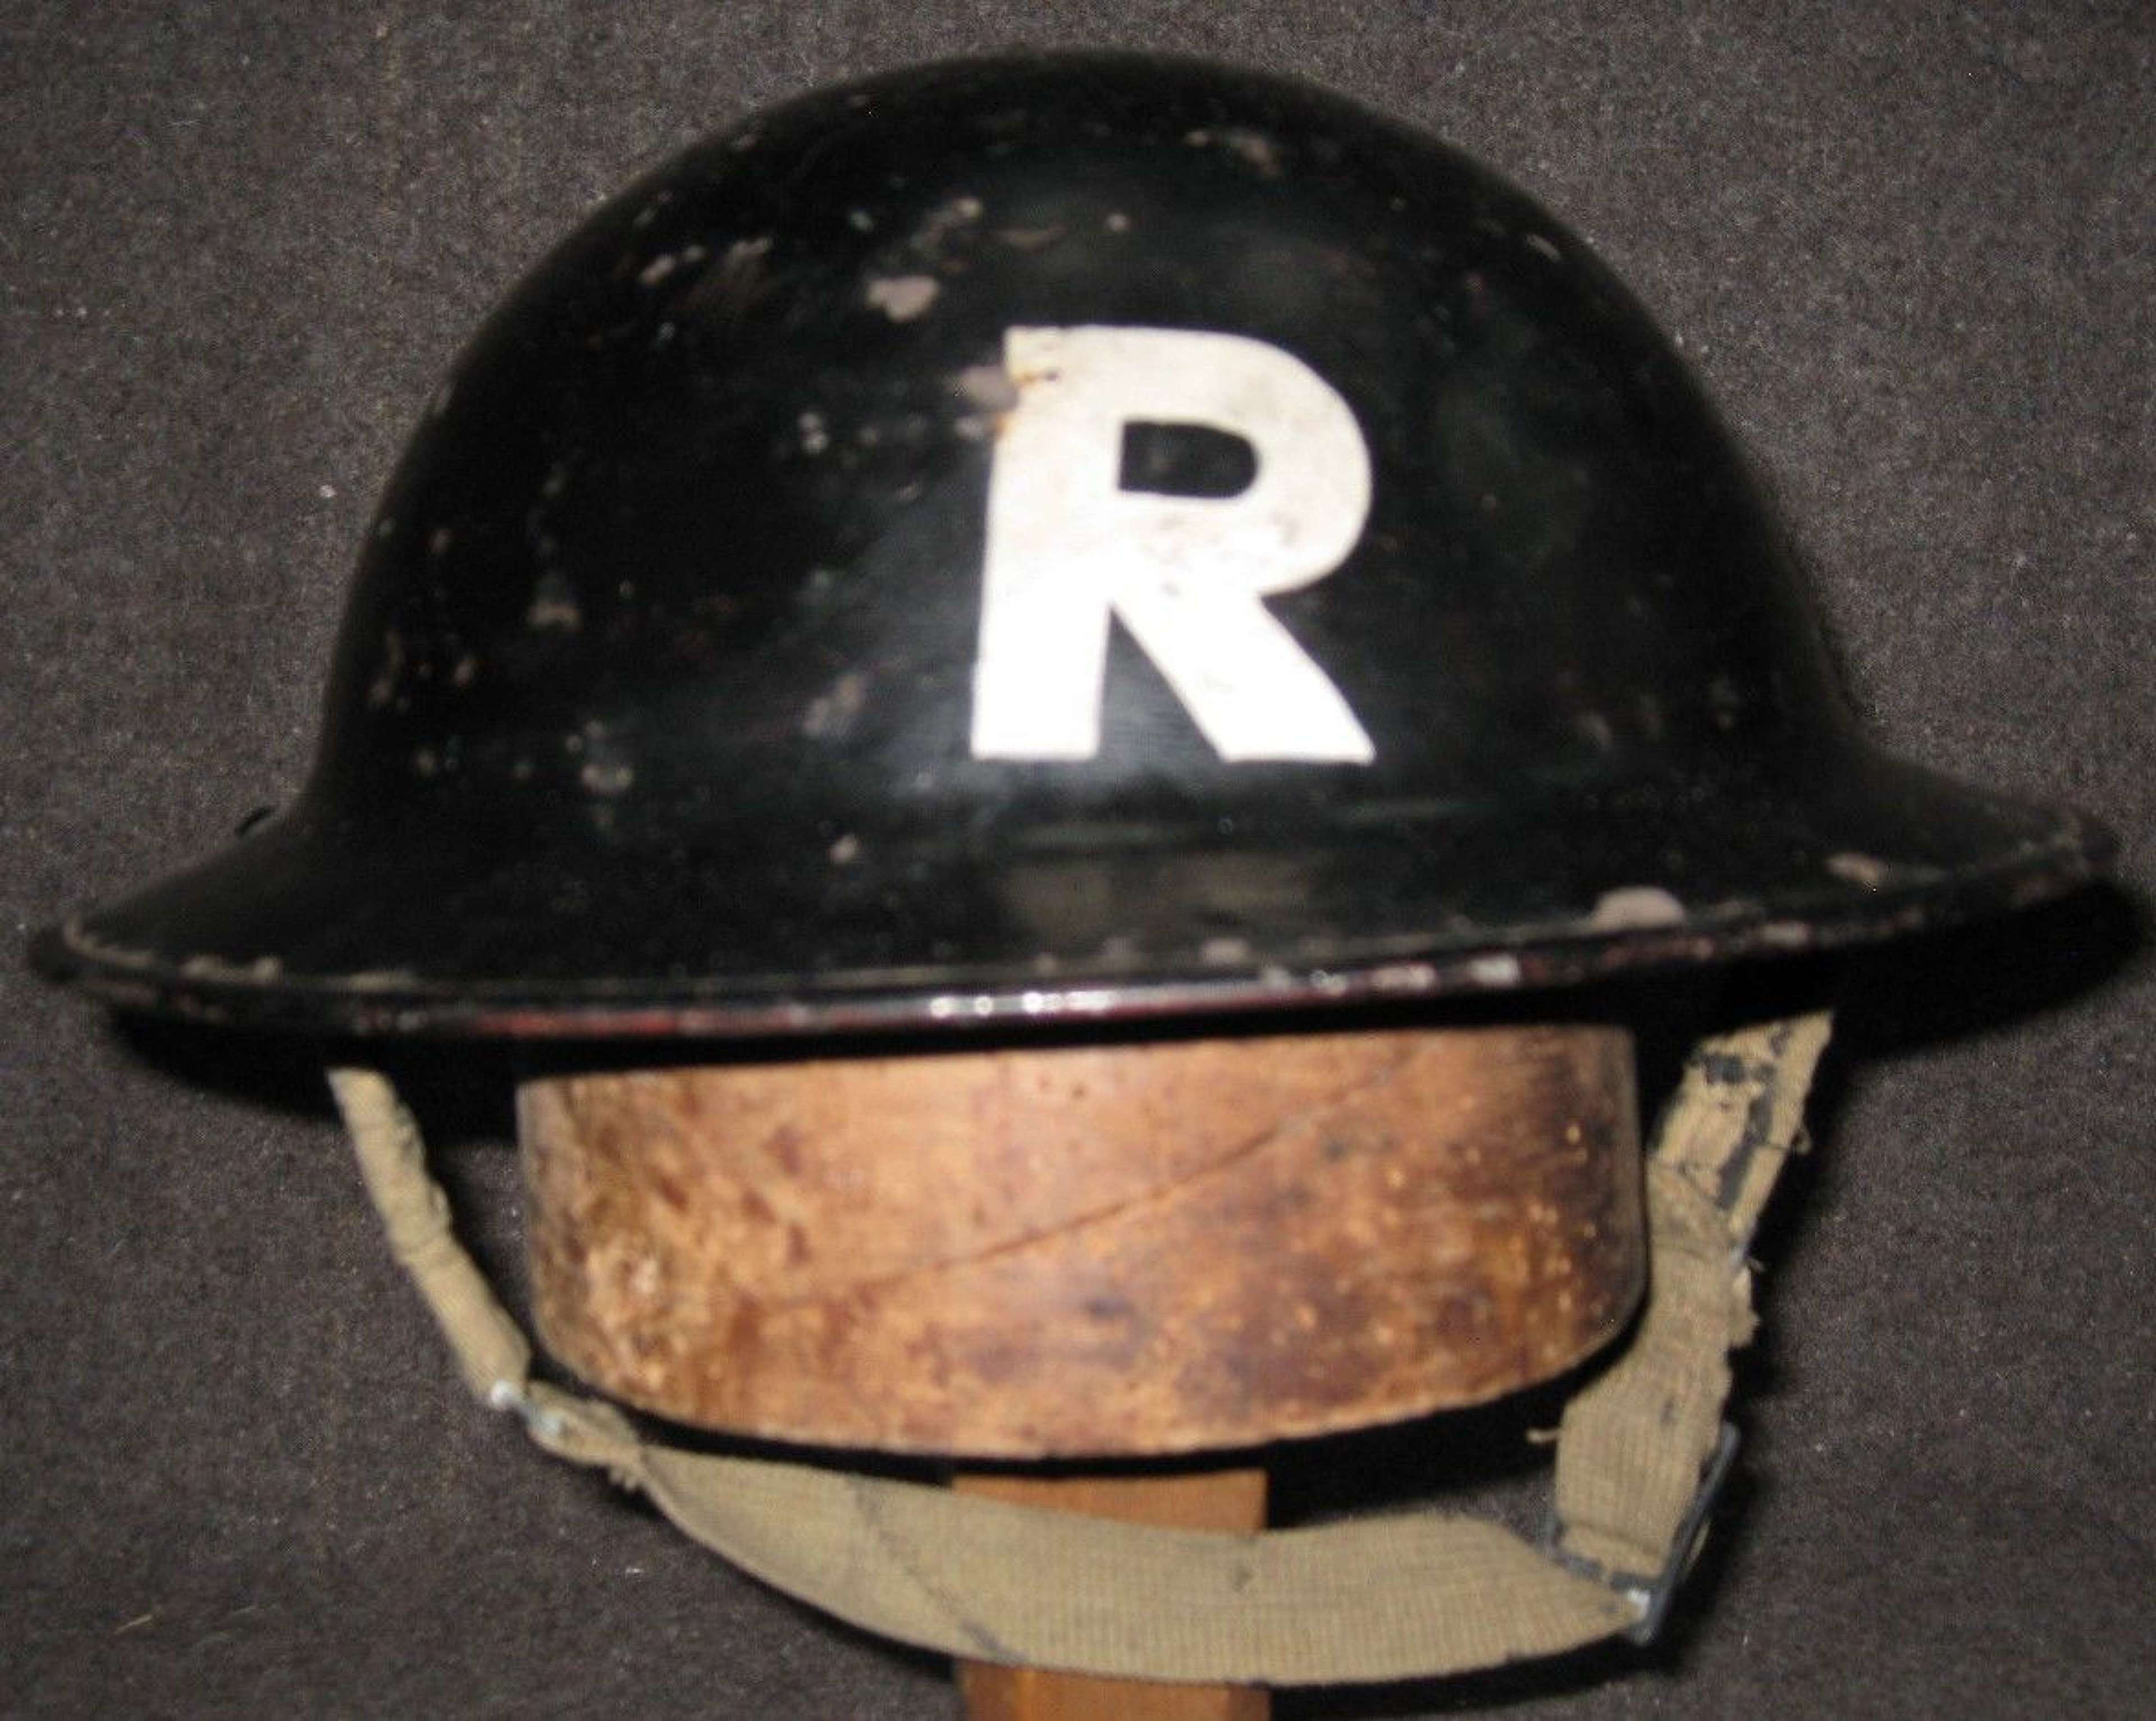 A WWII LONDON AREA RESCUE PARTY BLACK HELMET